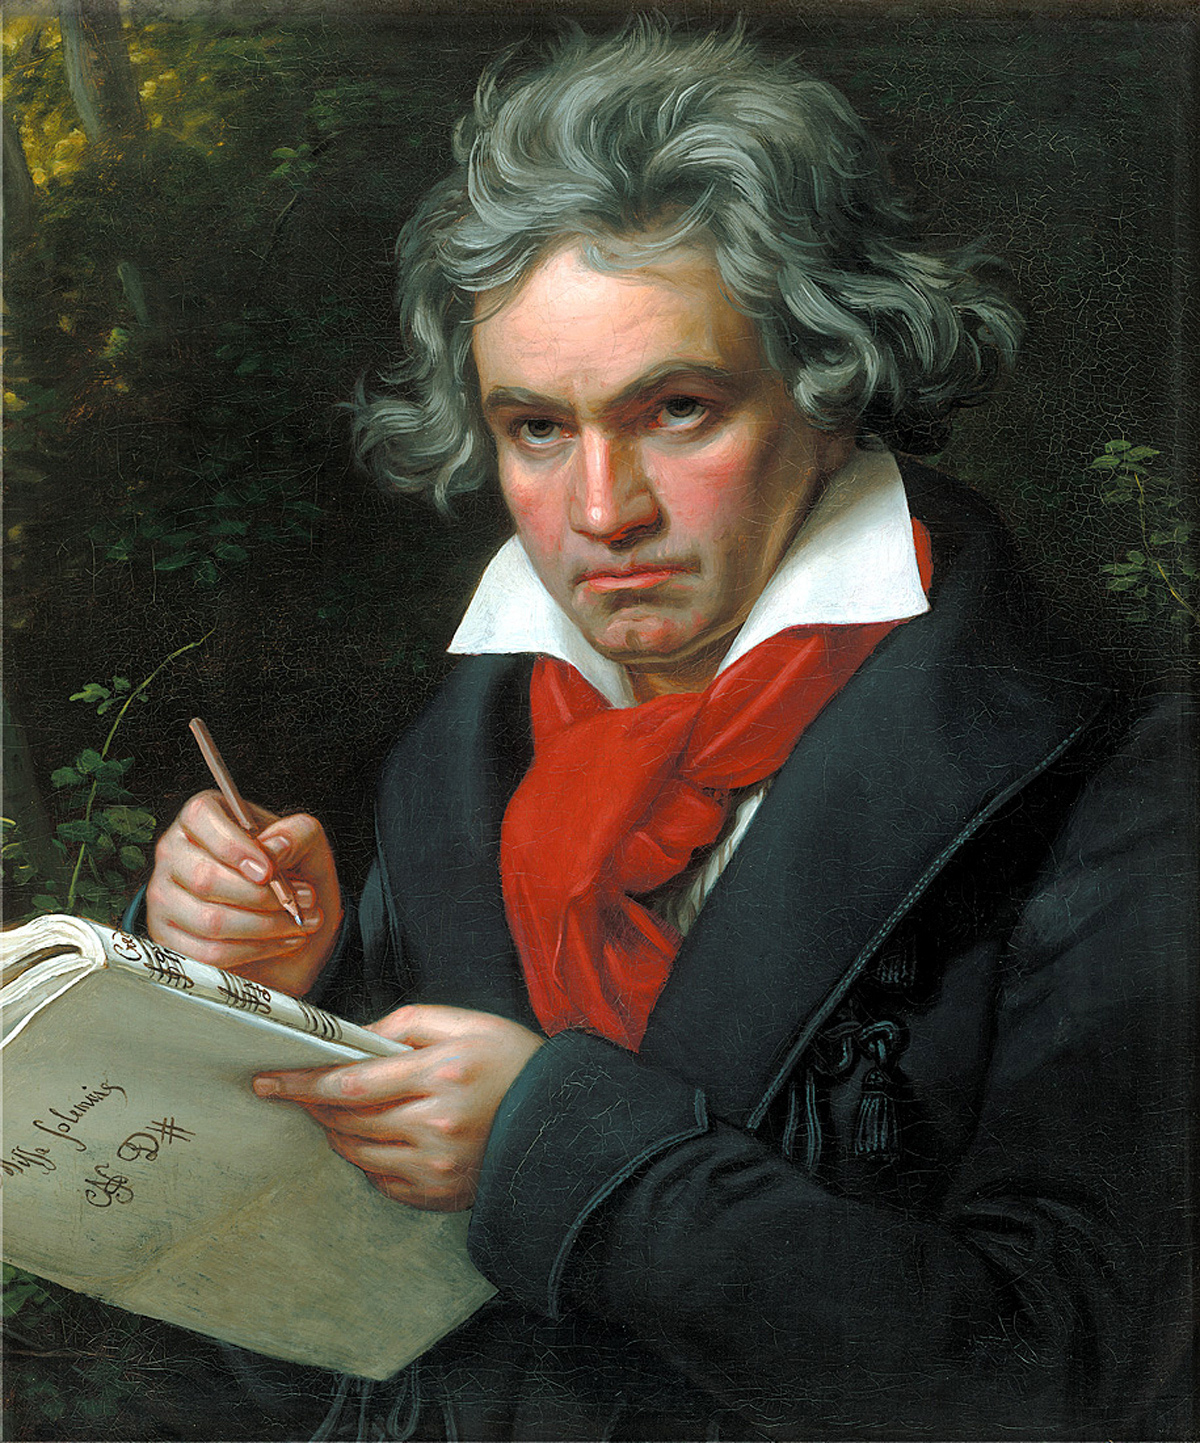 Portrait of Beethoven by [[Joseph Karl Stieler]], 1820